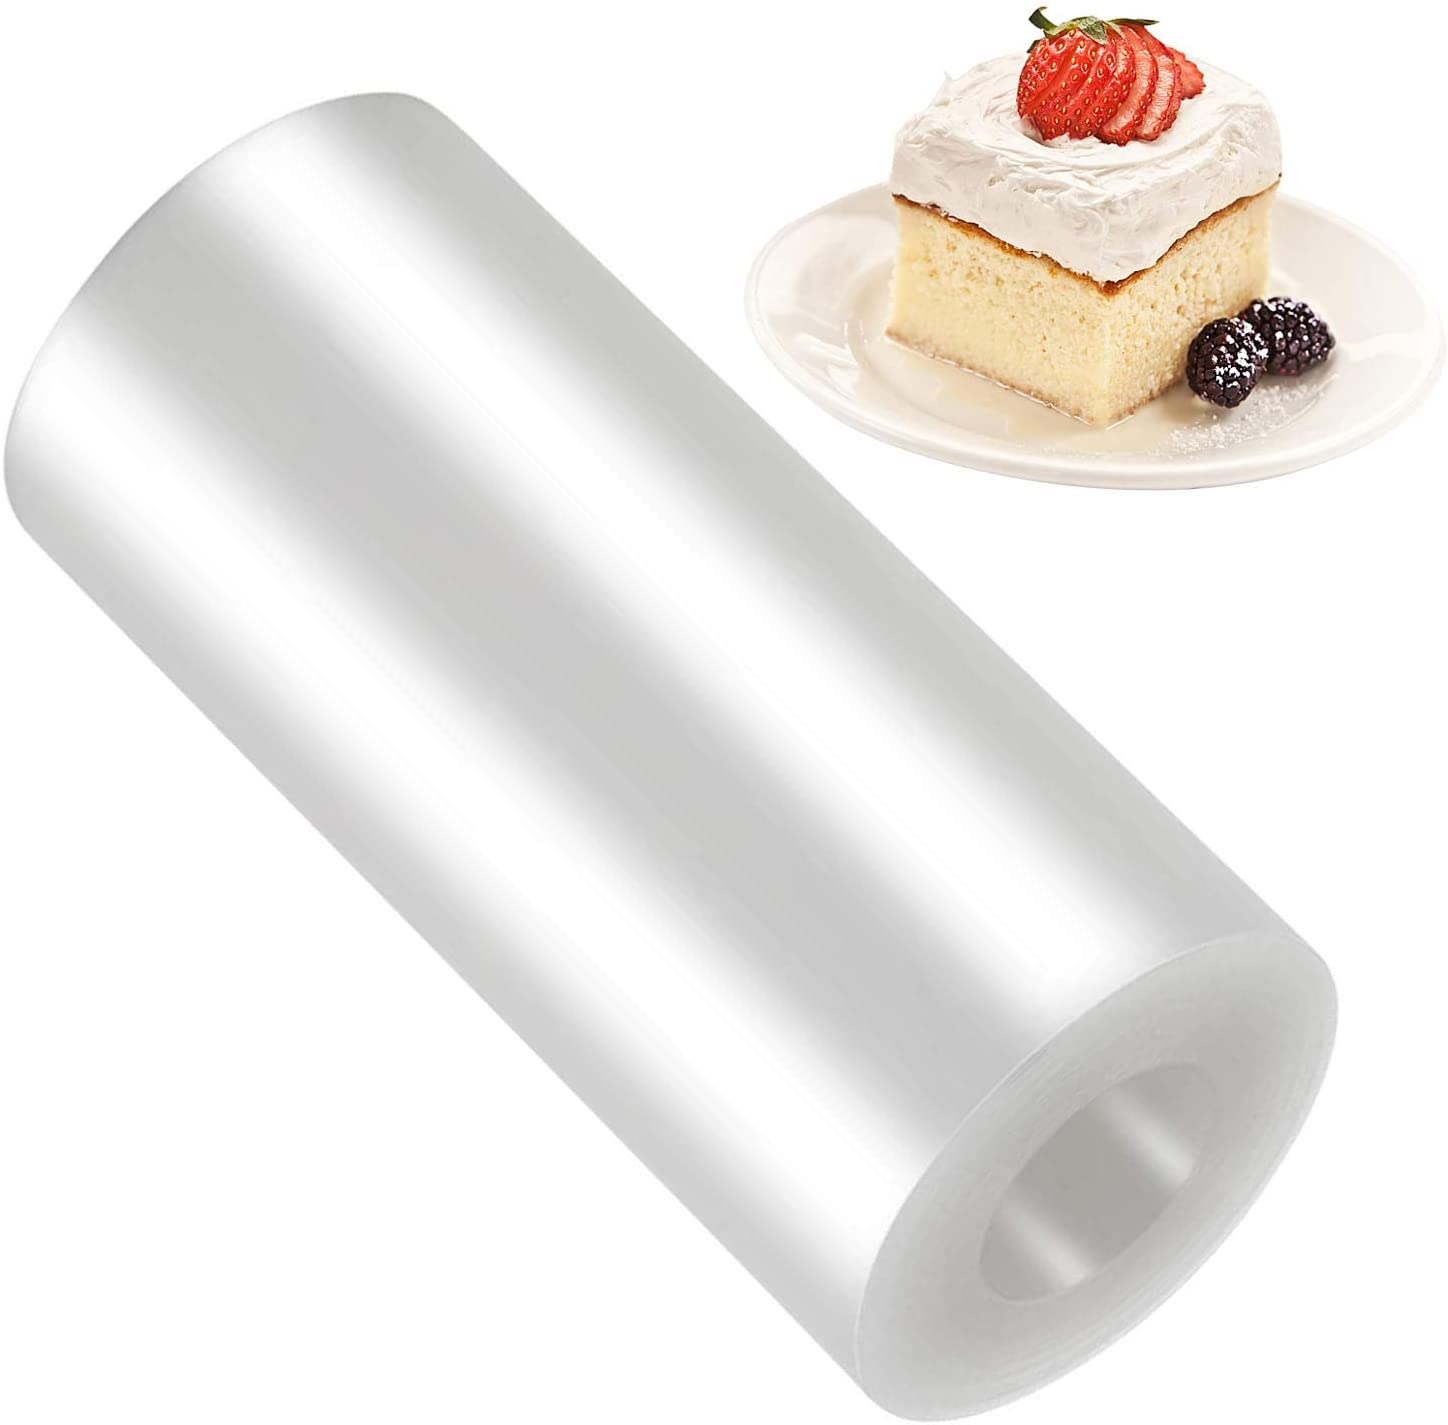 8 x 394Inch Cake Collar Acetate Sheets for Baking, Transparent Cake Strips, Clear Cake Rolls, Acetate Roll for Chocolate Mousse Baking, Food, Cake Surrounding Edge Decorating